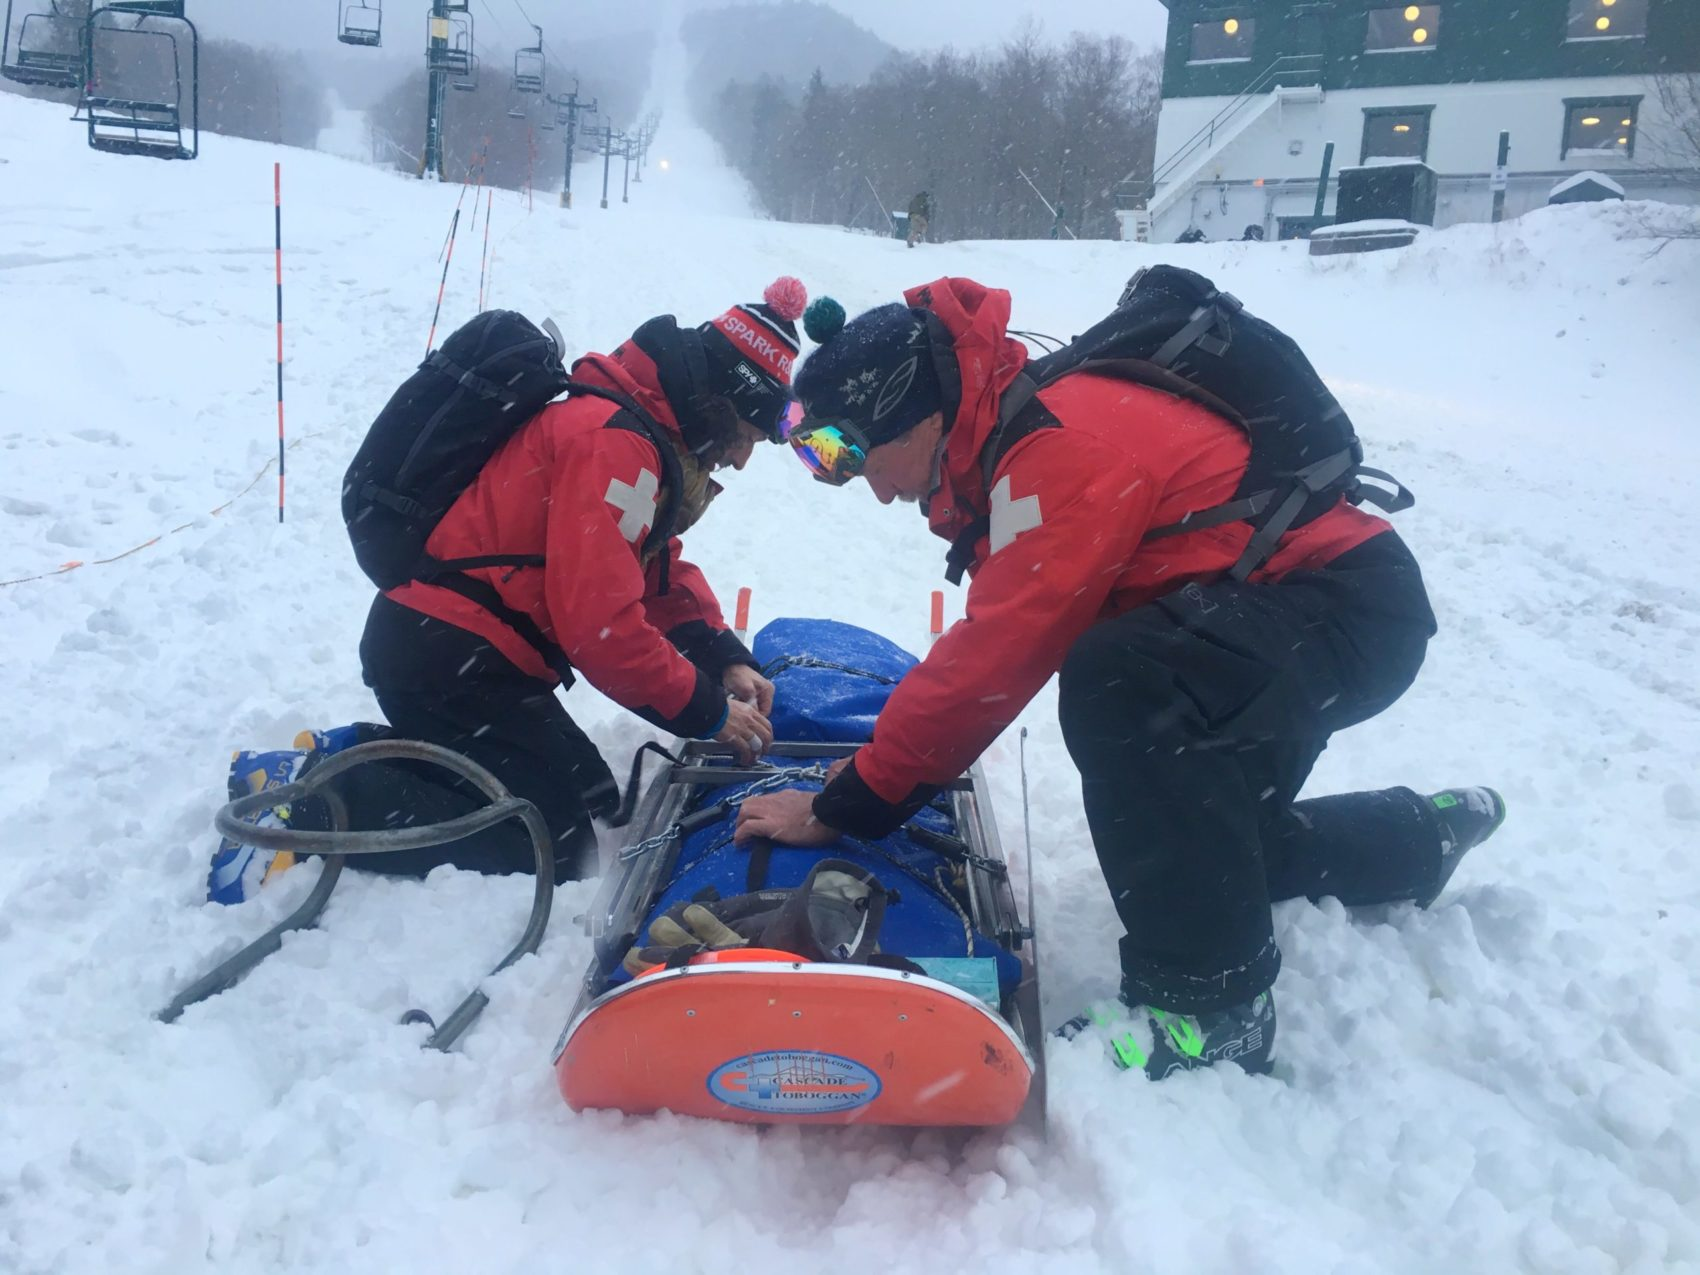 transporting a patient can save lives